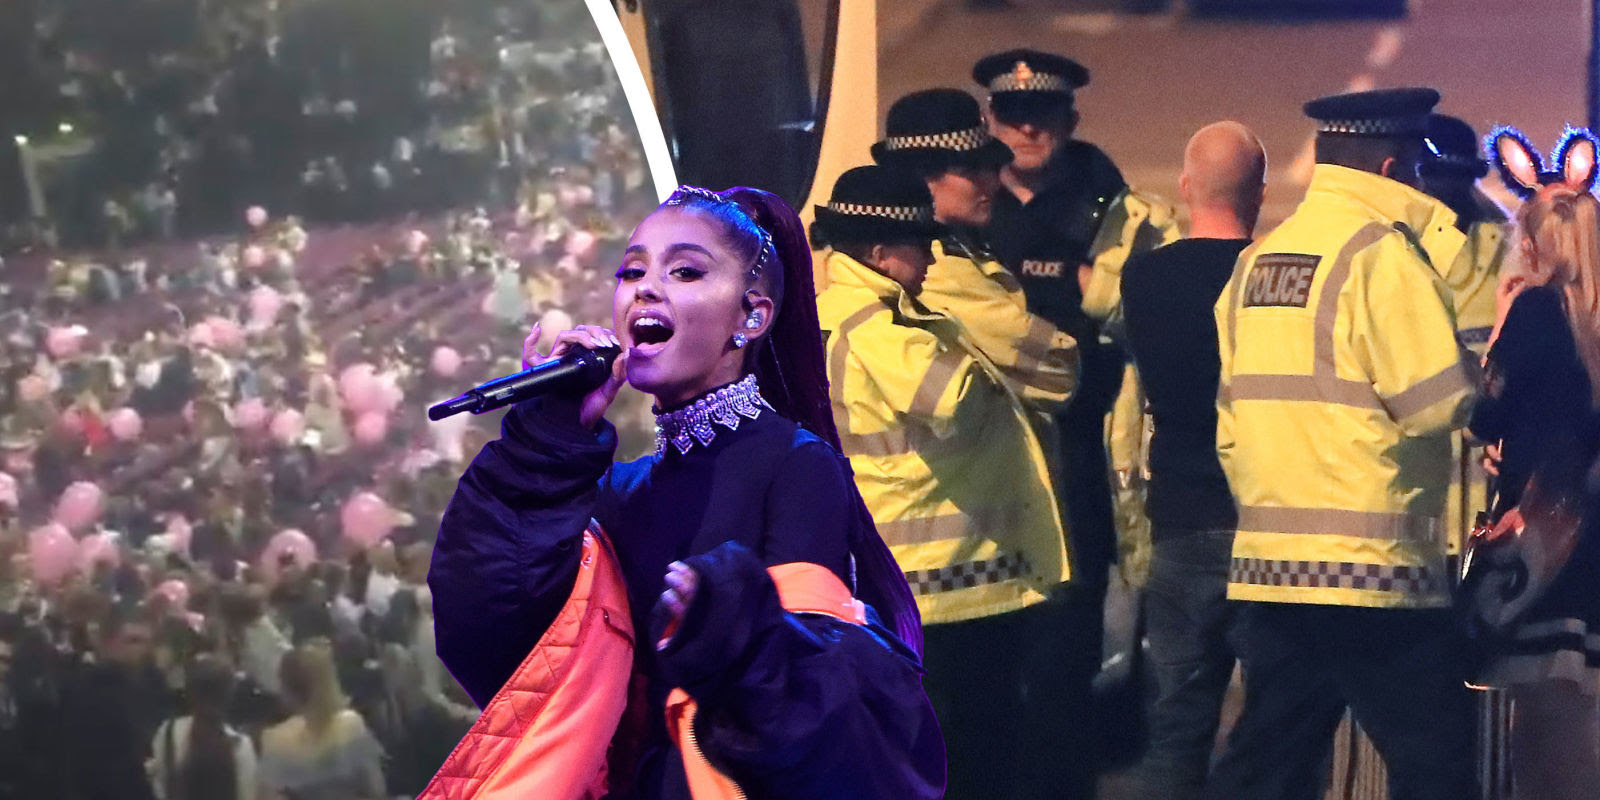 Image result for Ariana Grandemanchester